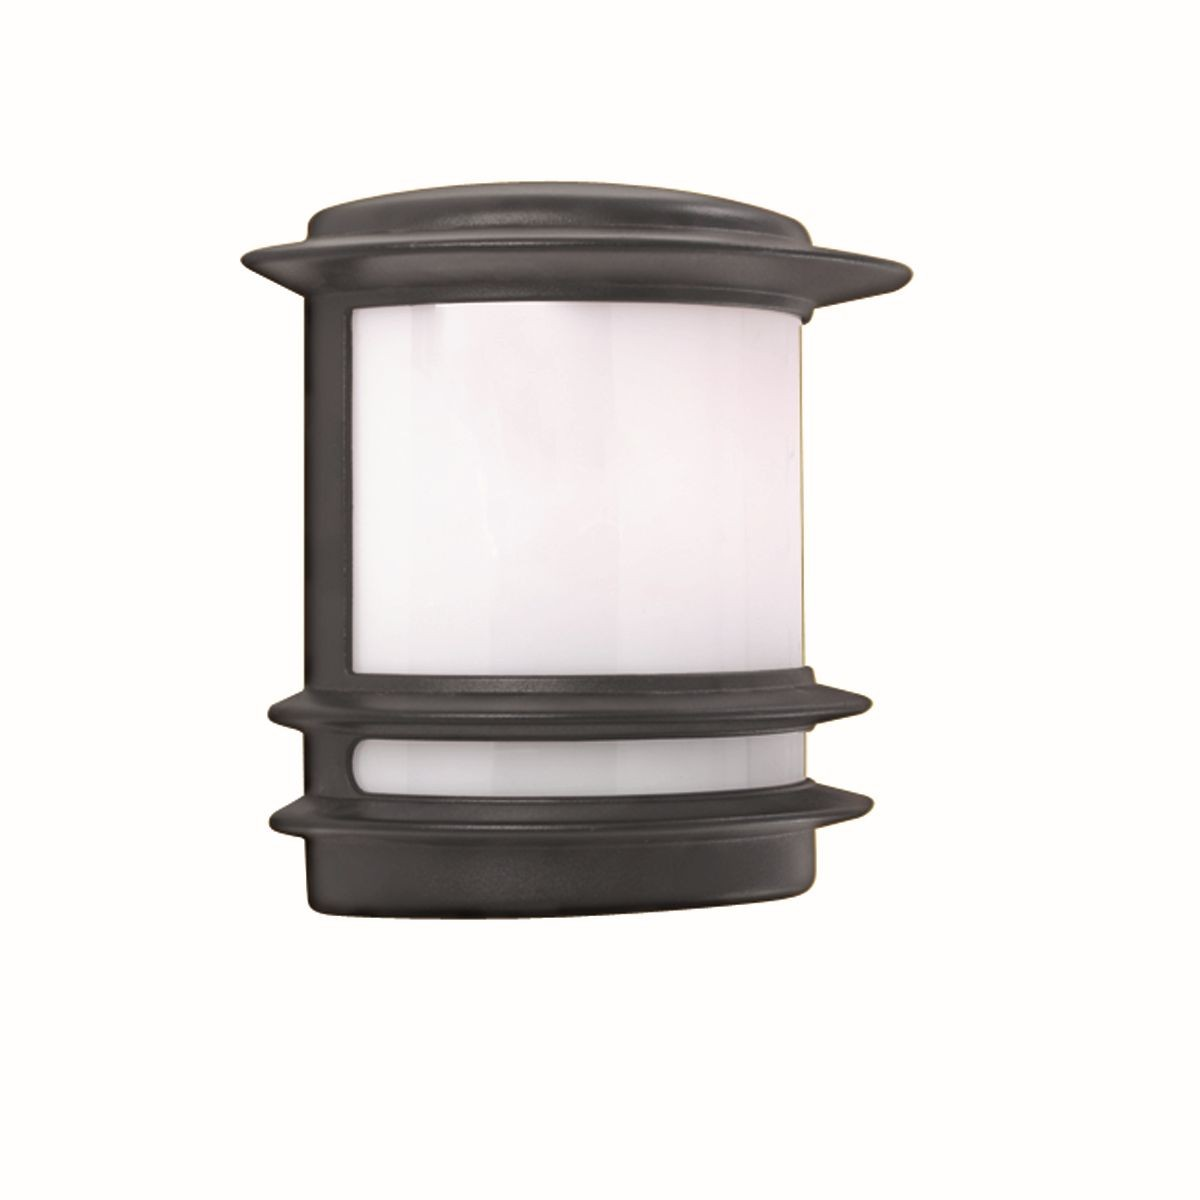 Traditional Nautical Black Ip44 Outdoor Garden Bollard: IP44 Outdoor Bollard Post Lamp